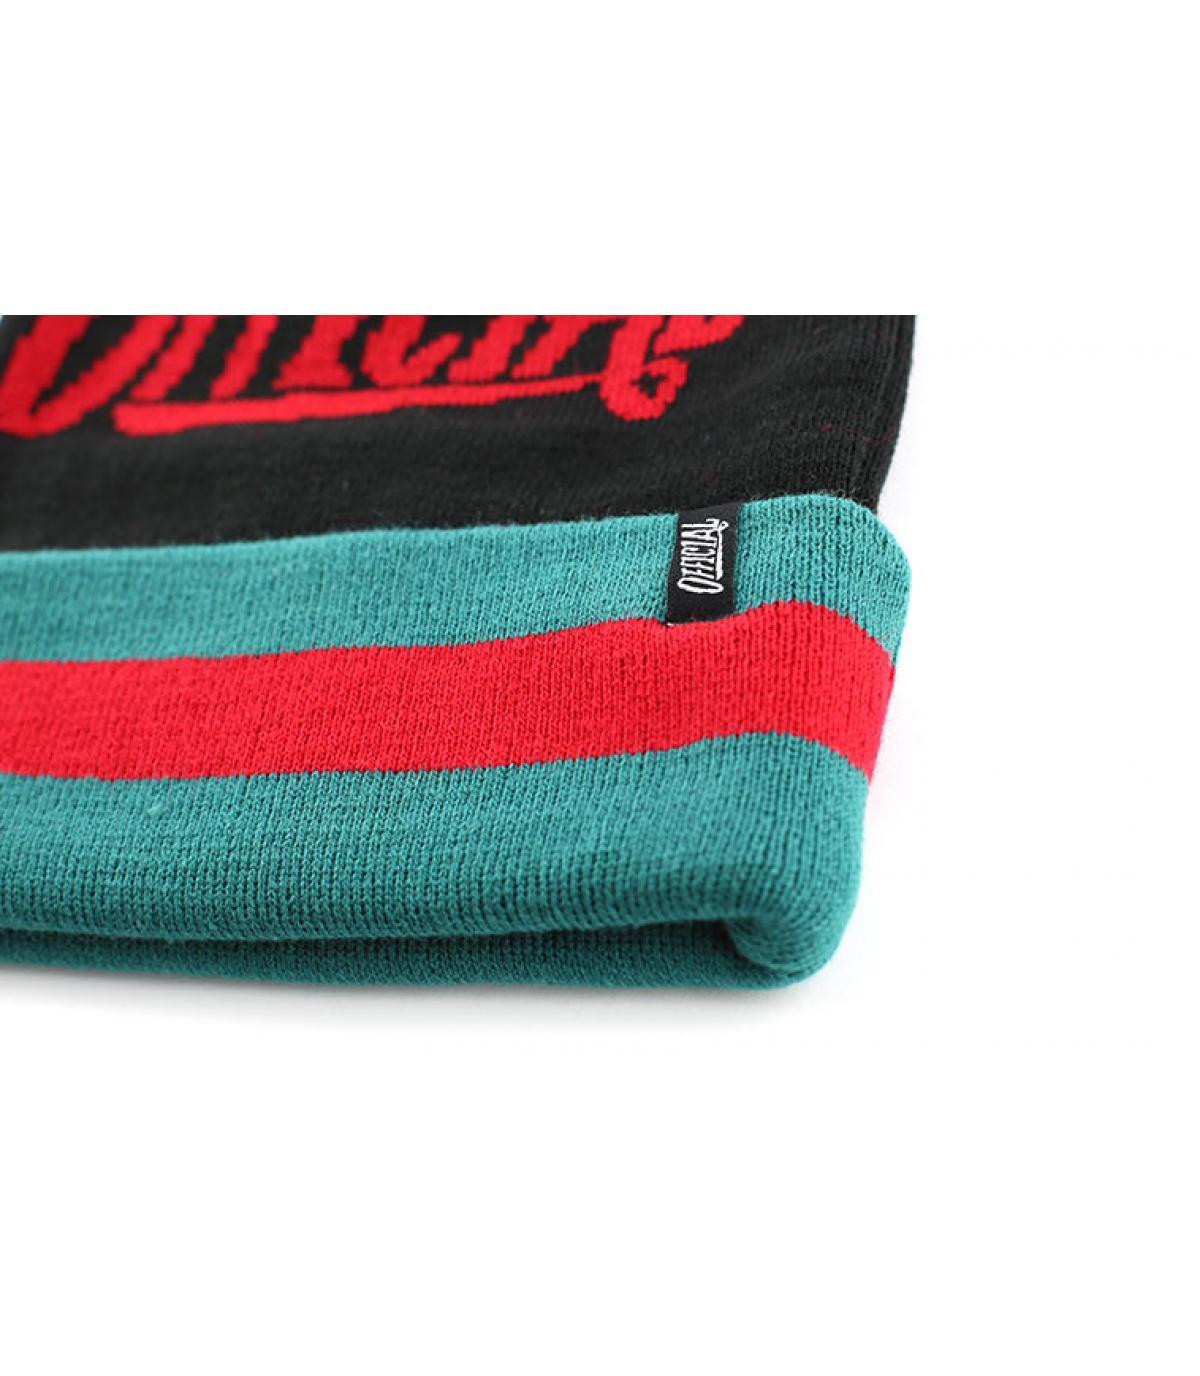 The Official black beanie